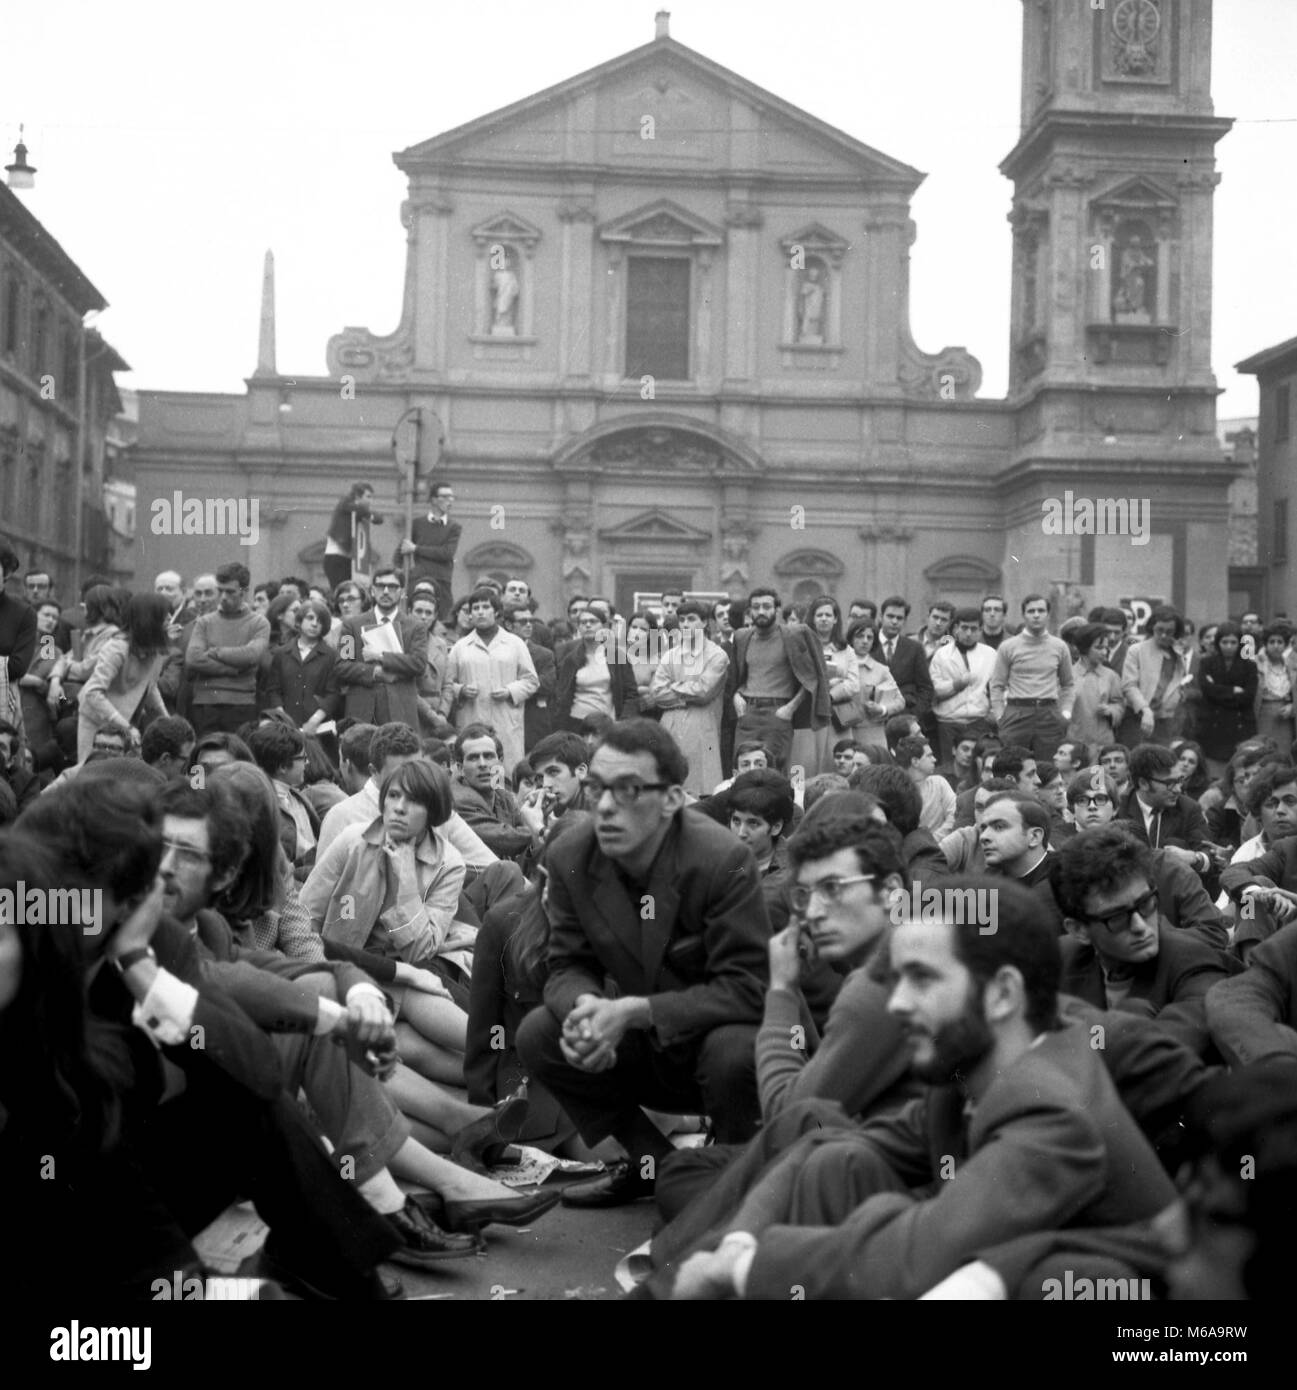 EMPLOYMENT TO THE CATHOLIC UNIVERSITY, MANIFESTATION OF STUDENTS OF THE STUDENT MOVEMENT, SIT IN PIAZZA SANTO STEFANO - Stock Image